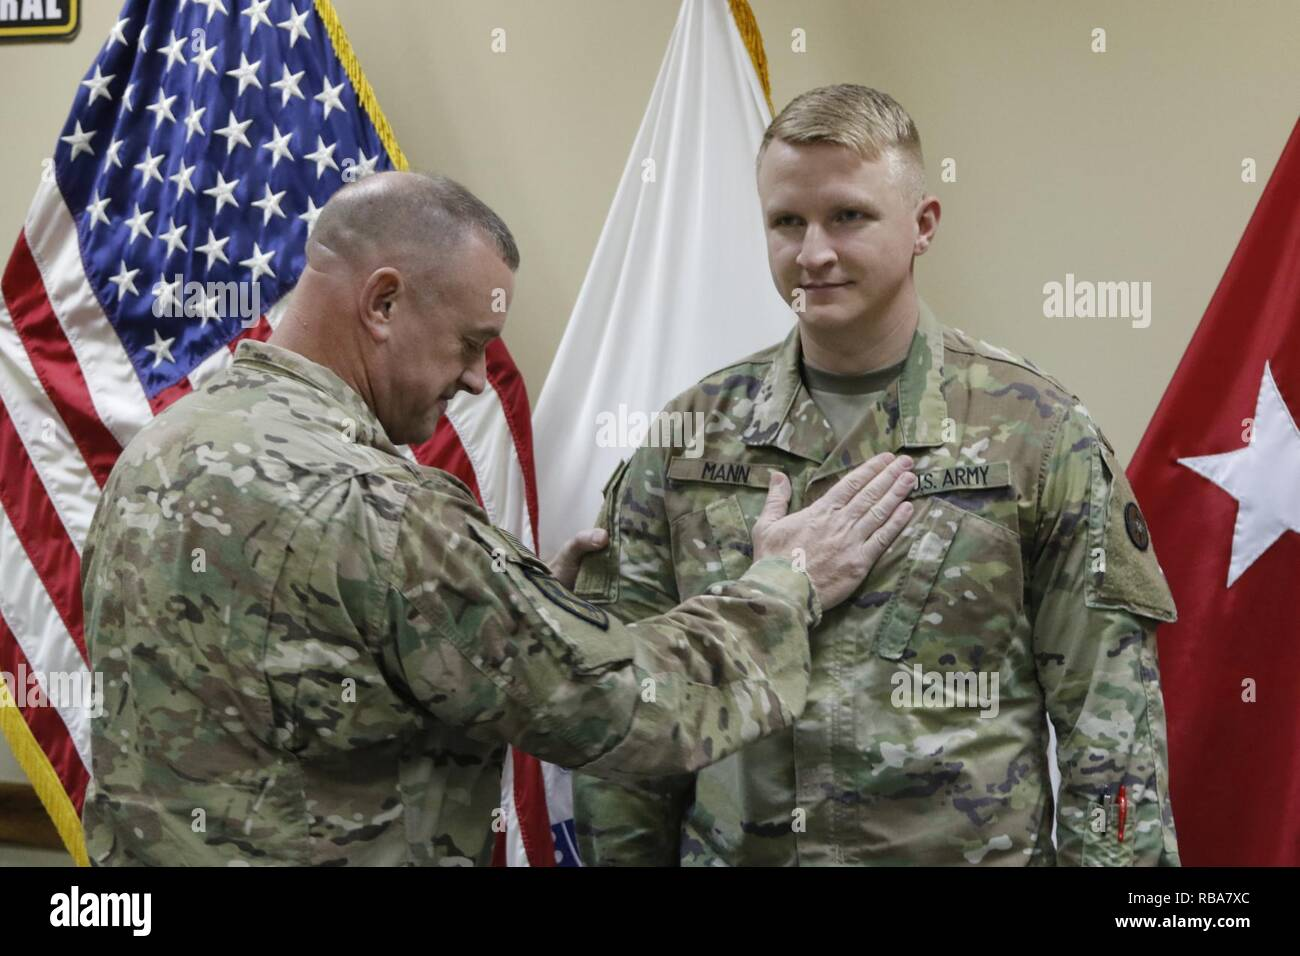 Brig. Gen. Robert D. Harter, 316th Sustainment Command (Expeditionary) commanding general, places the rank of 1st Lieutenant on Christopher Mann during a promotion ceremony at Camp Arifjan, Kuwait, Dec. 31, 2016. - Stock Image